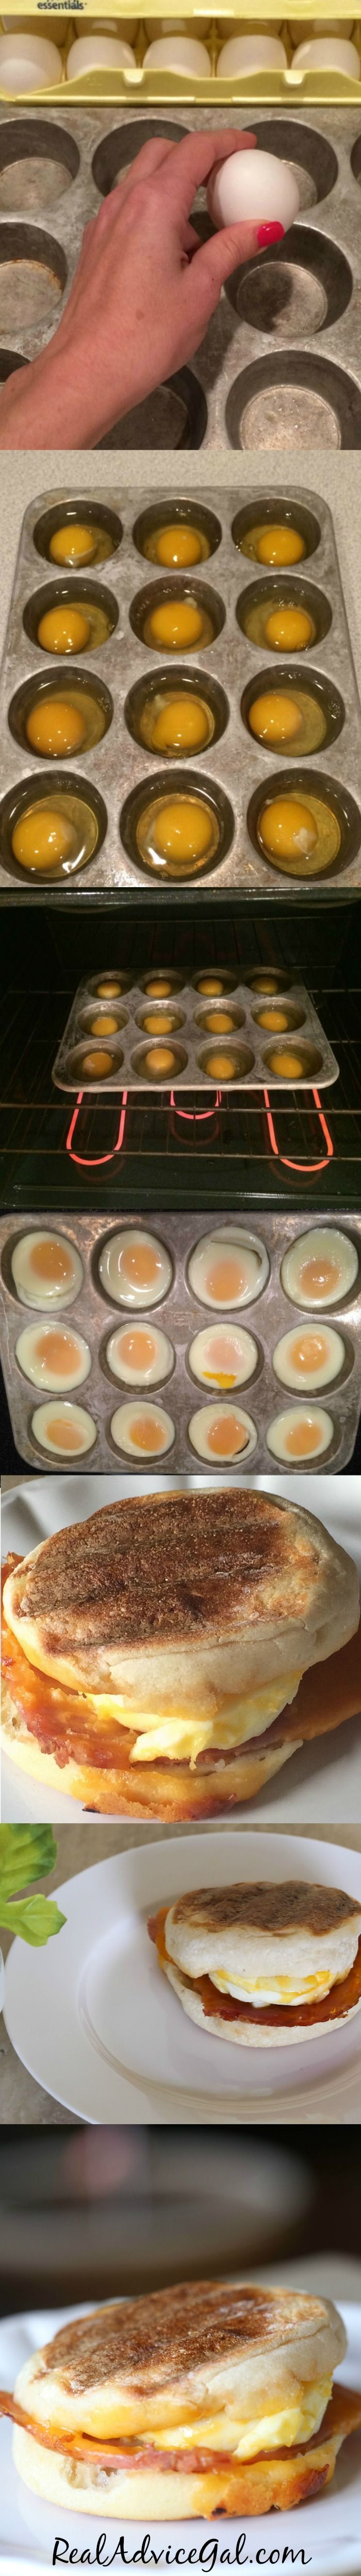 Baked Eggs in a Muffin Tin Recipe